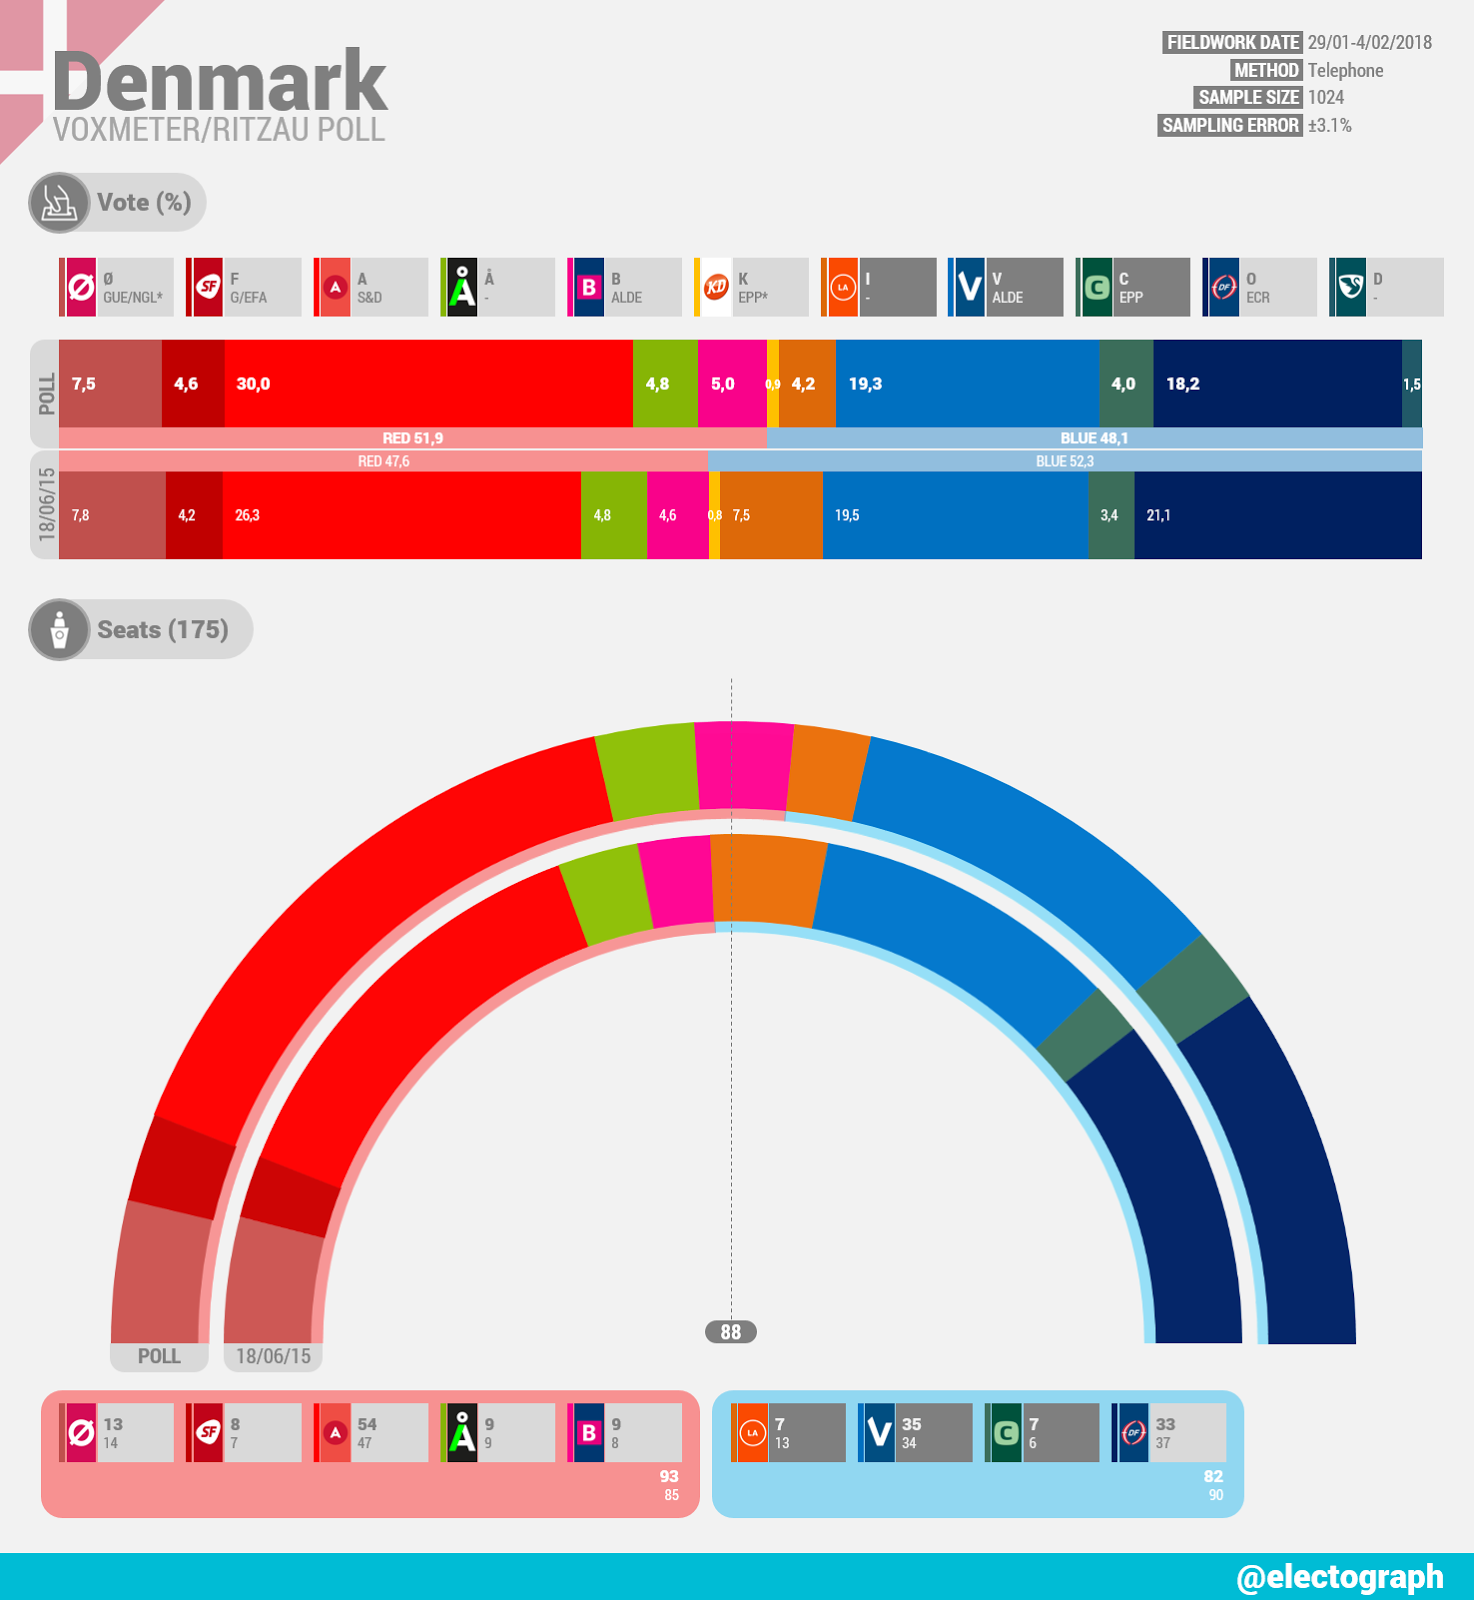 DENMARK Voxmeter poll chart for Ritzau, February 2018